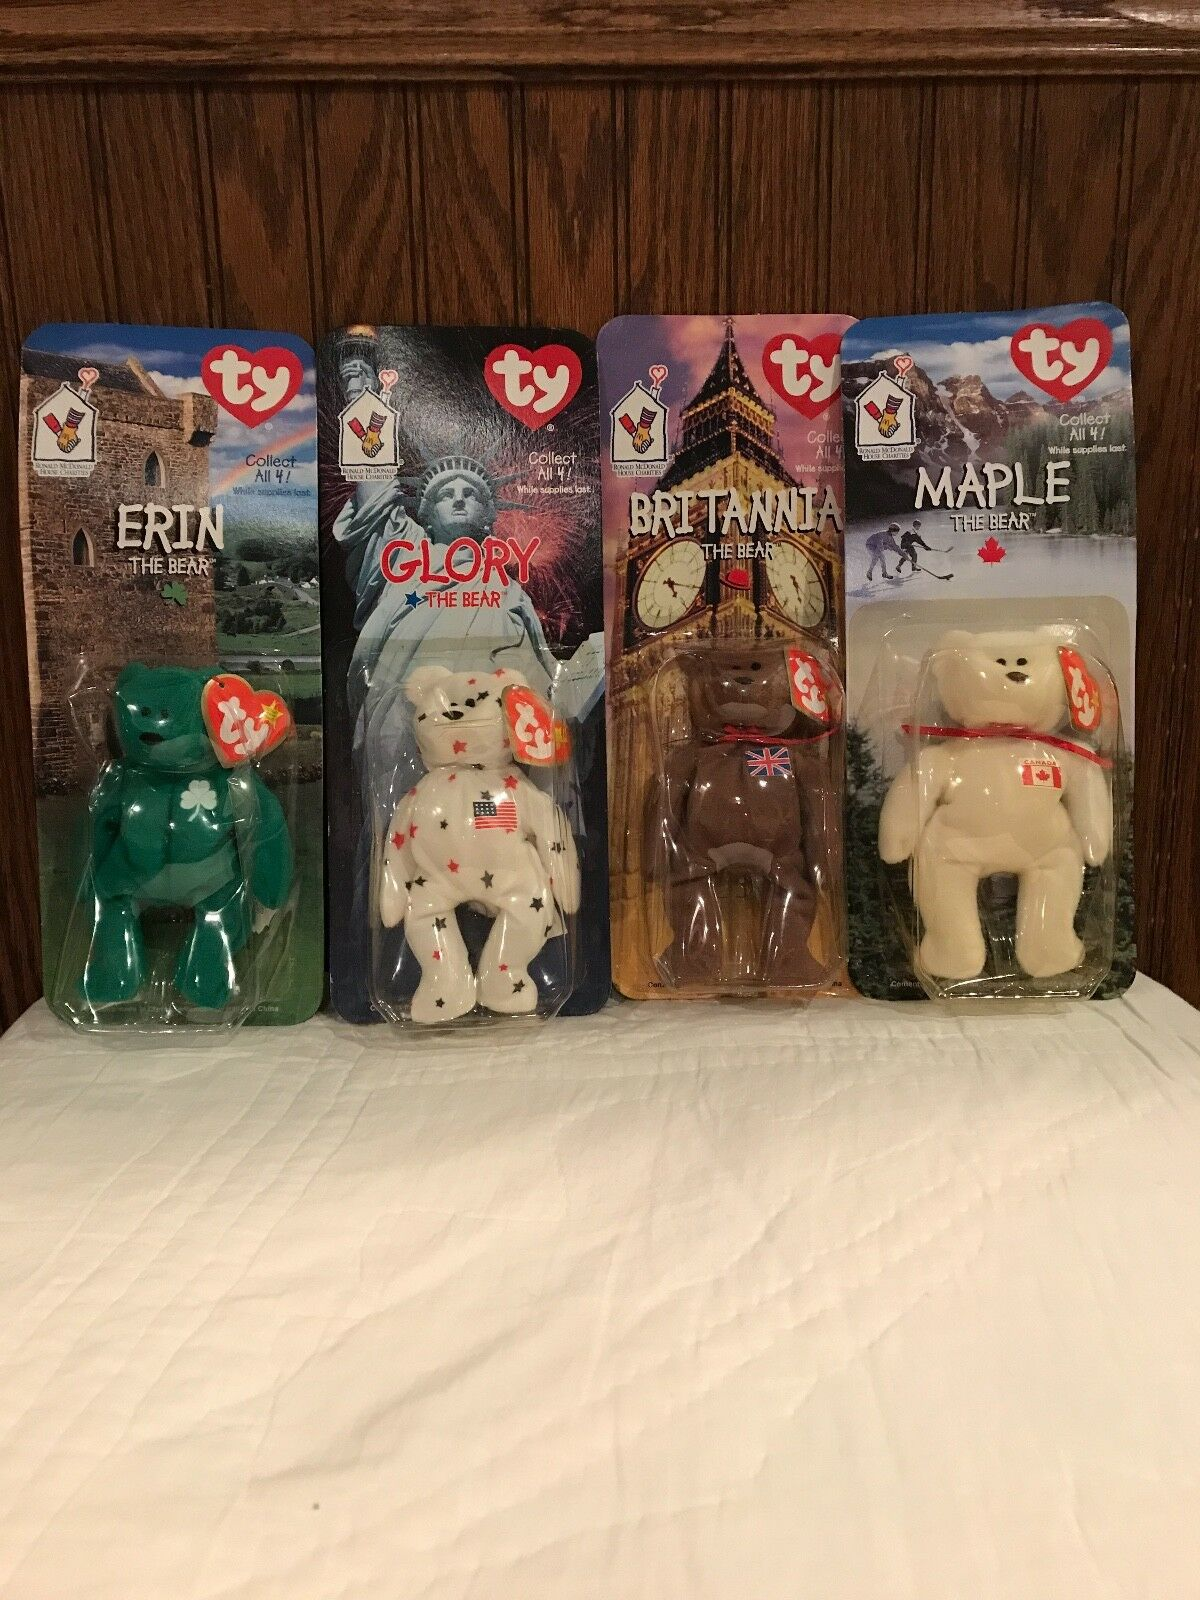 Mcdonalds durch internationale beanie baby - set - ruhm, ahorn, erin & britannia